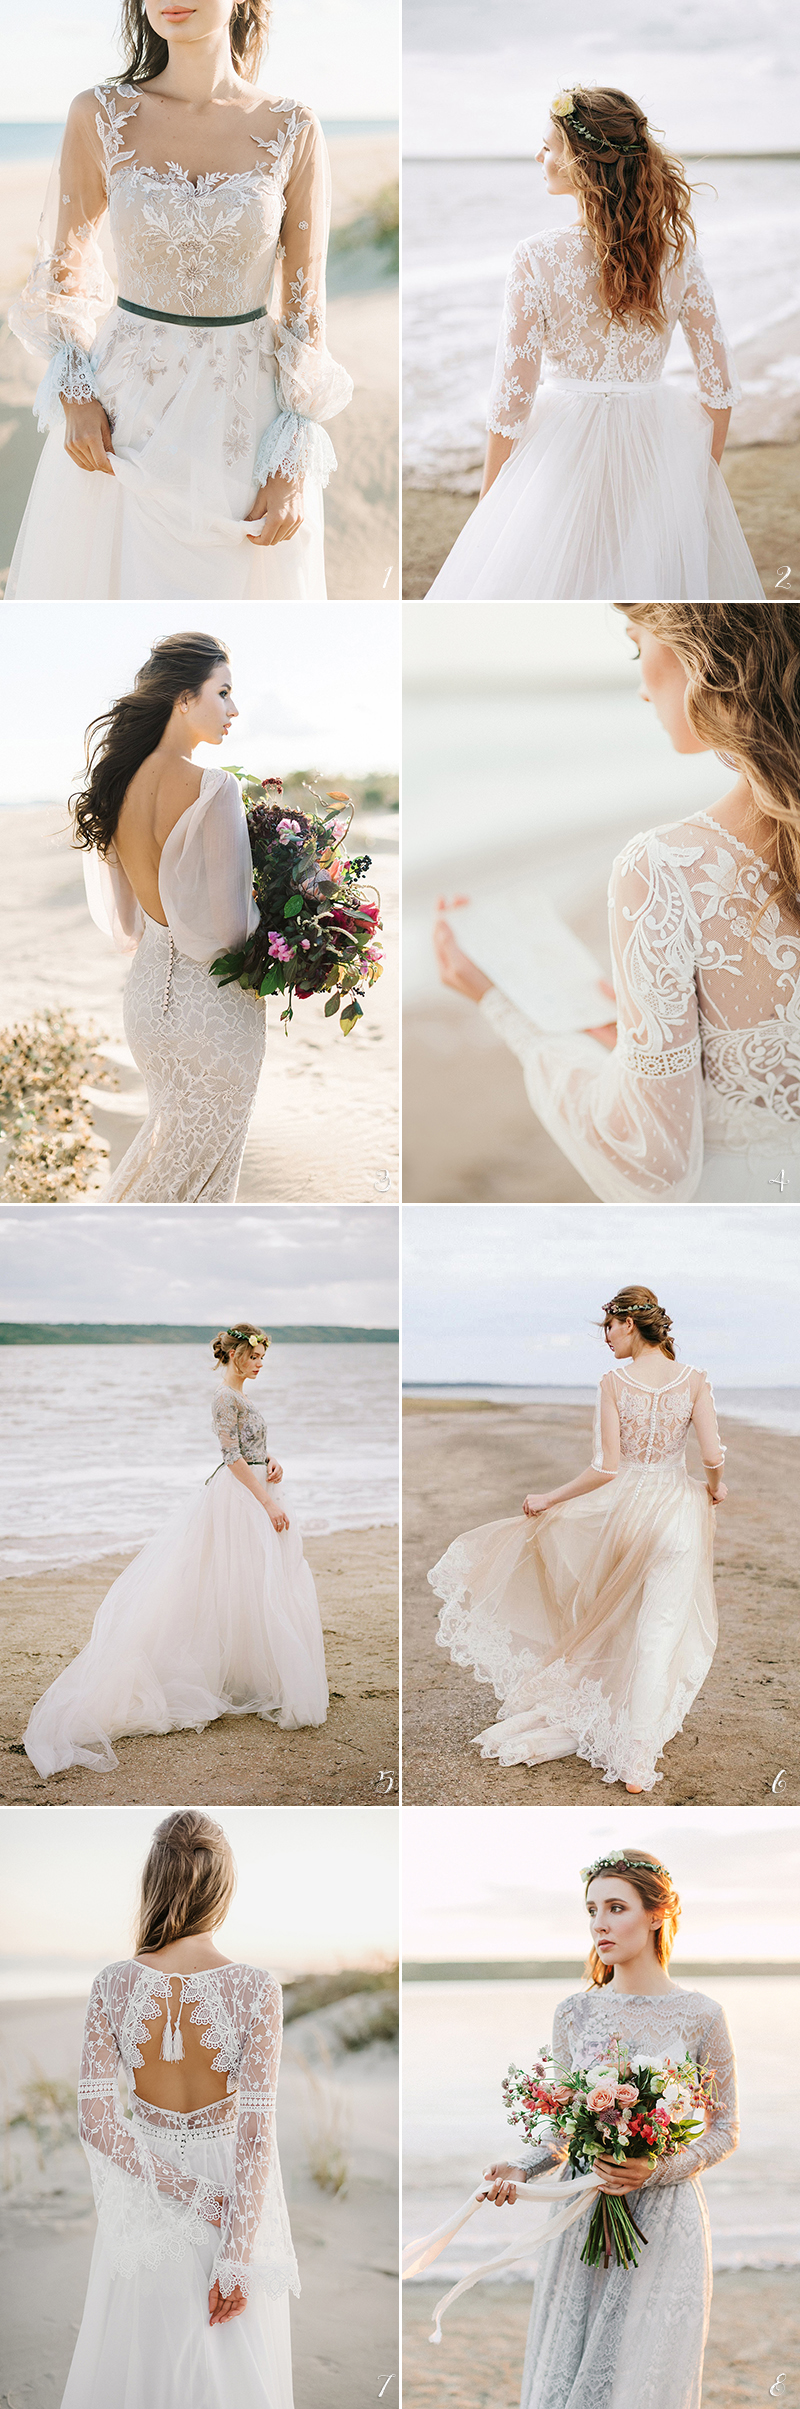 Fine art handmade wedding dress